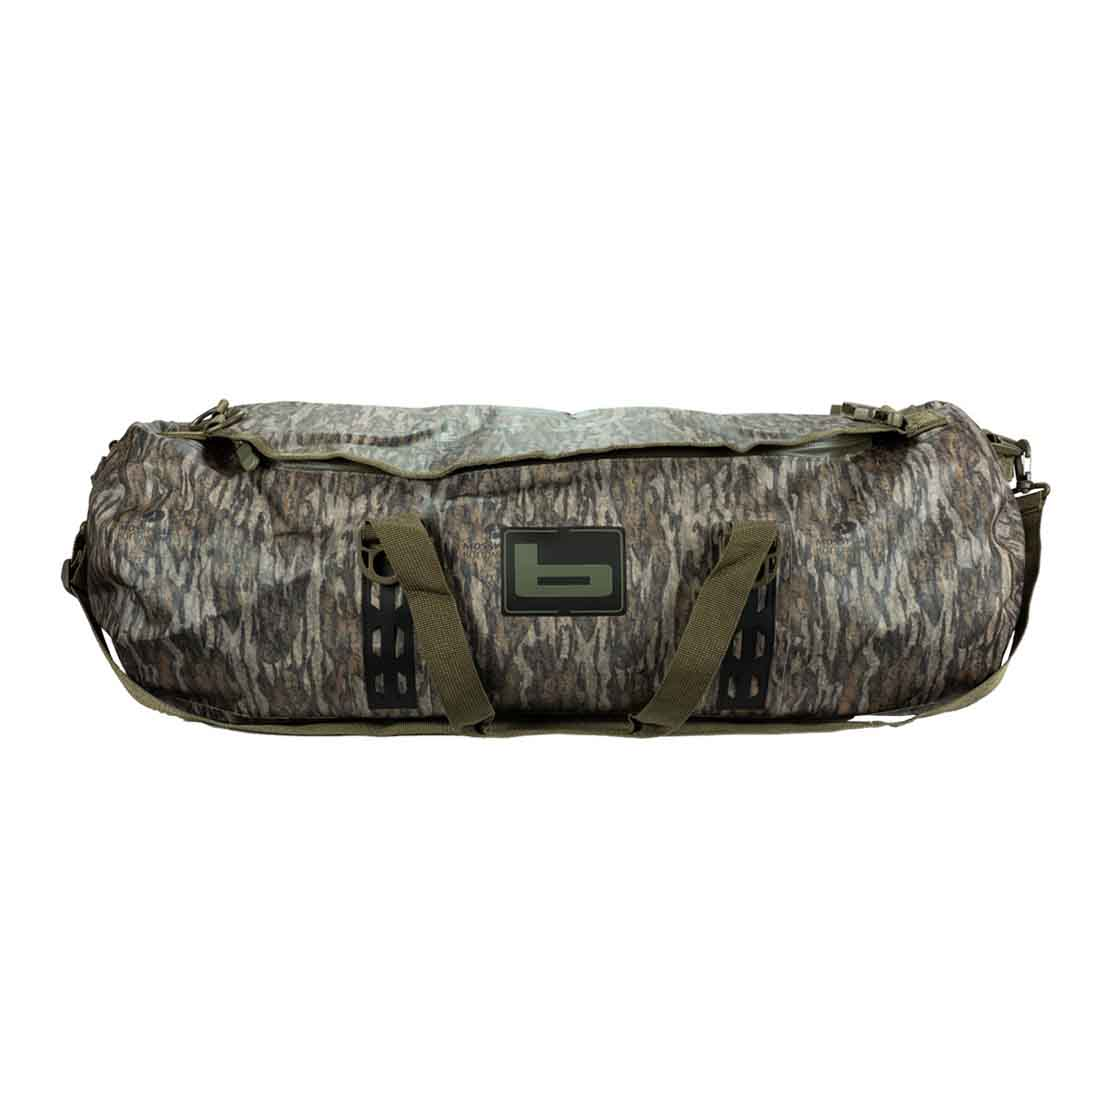 Banded The Hunting Trip Bag - Mossy Oak Bottomland